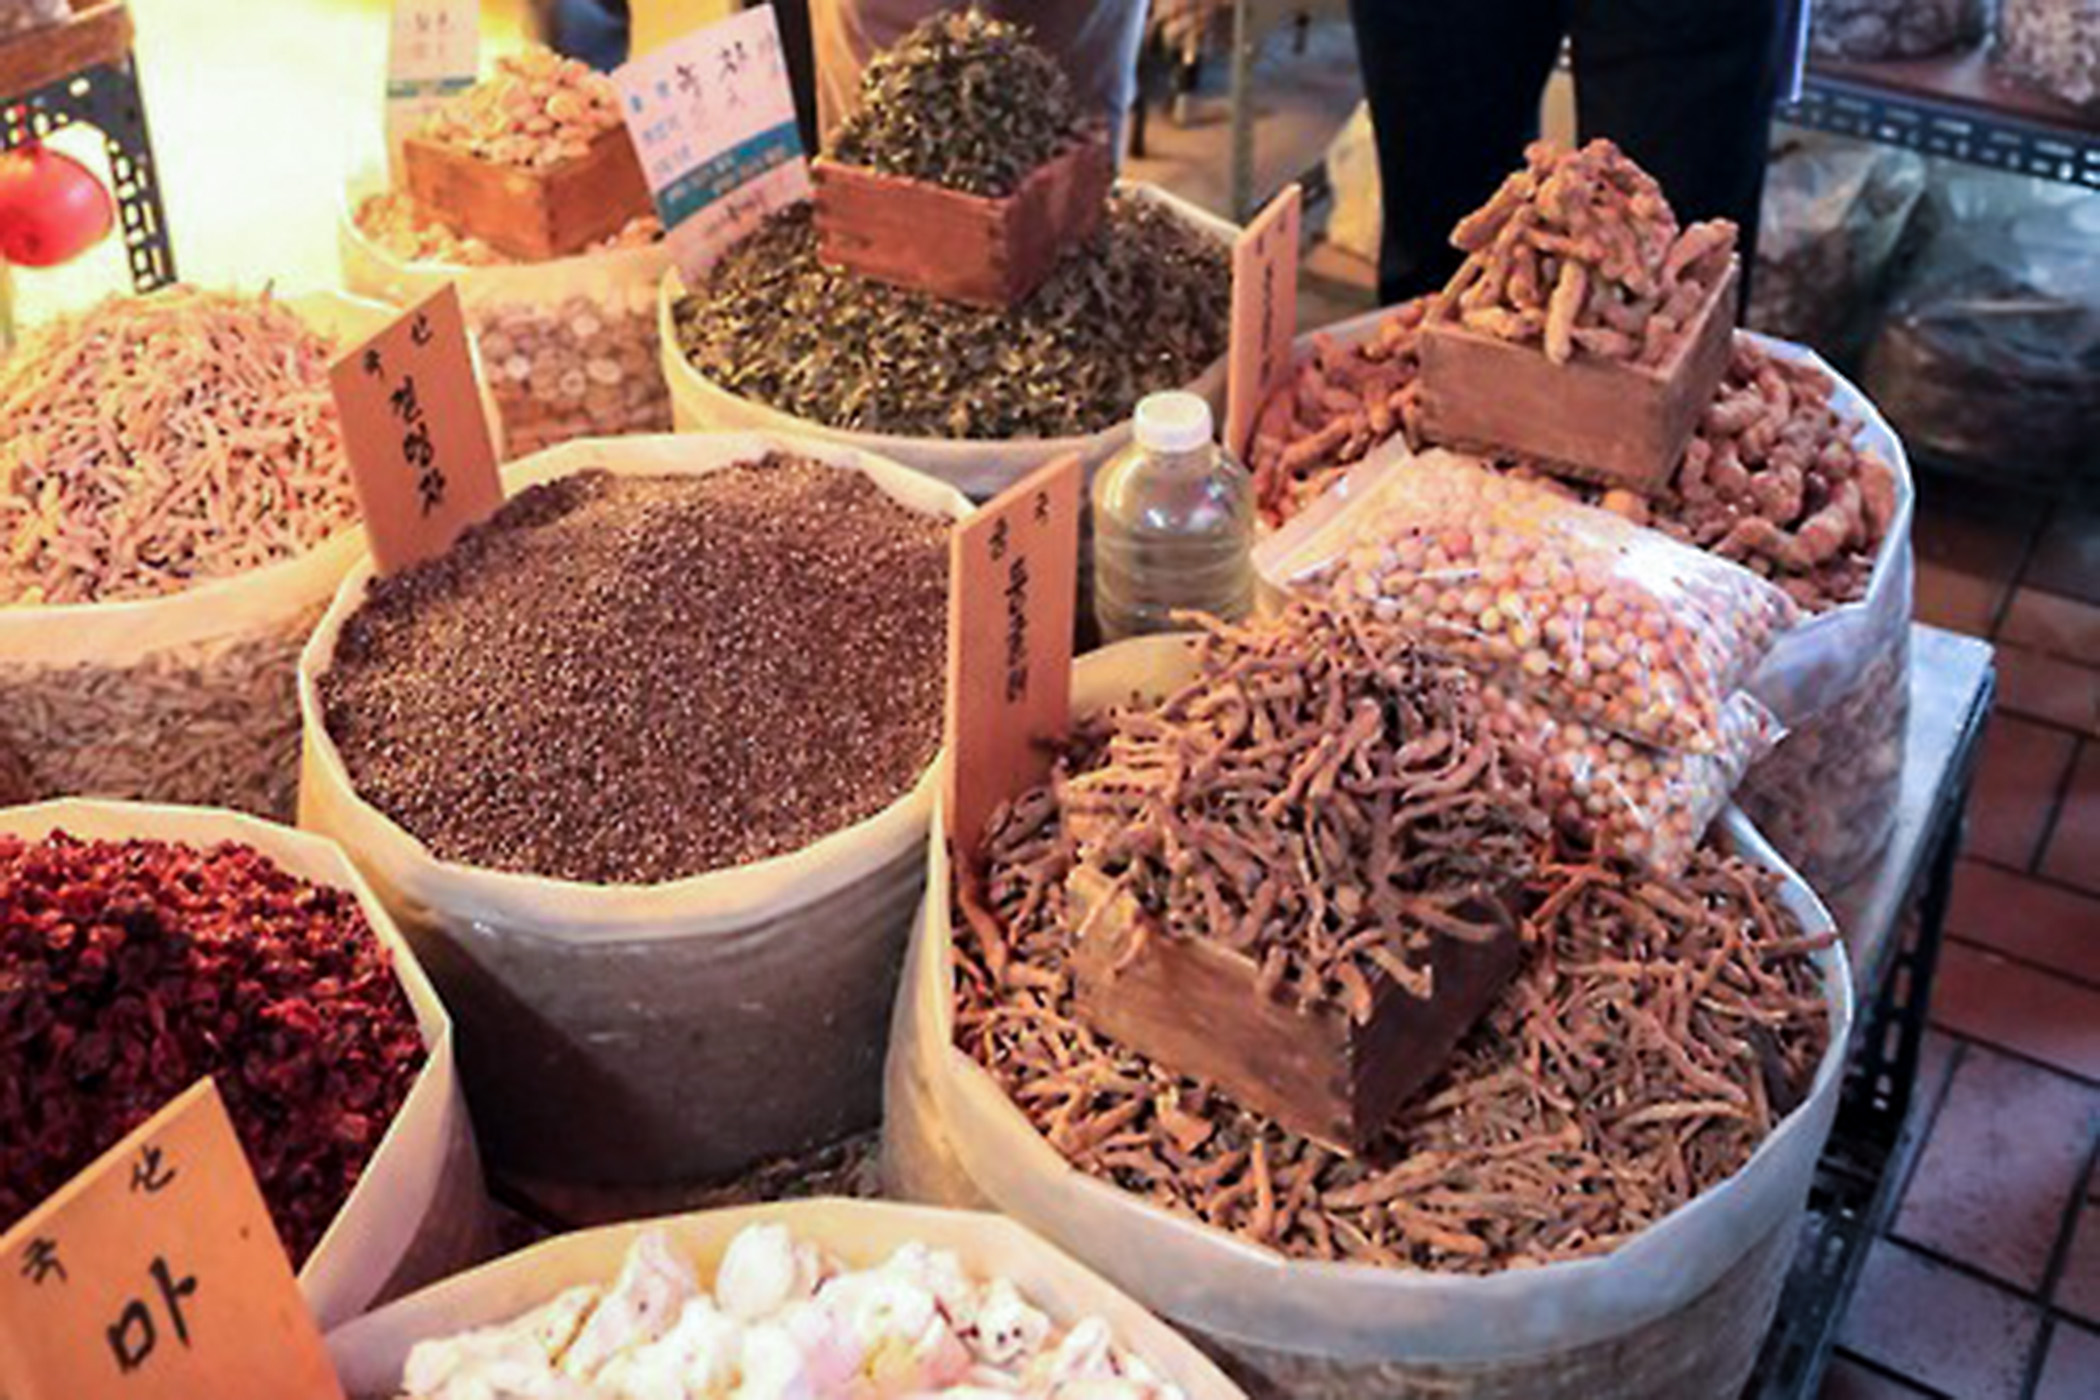 Multiple sacks of mushrooms and other produce at a market